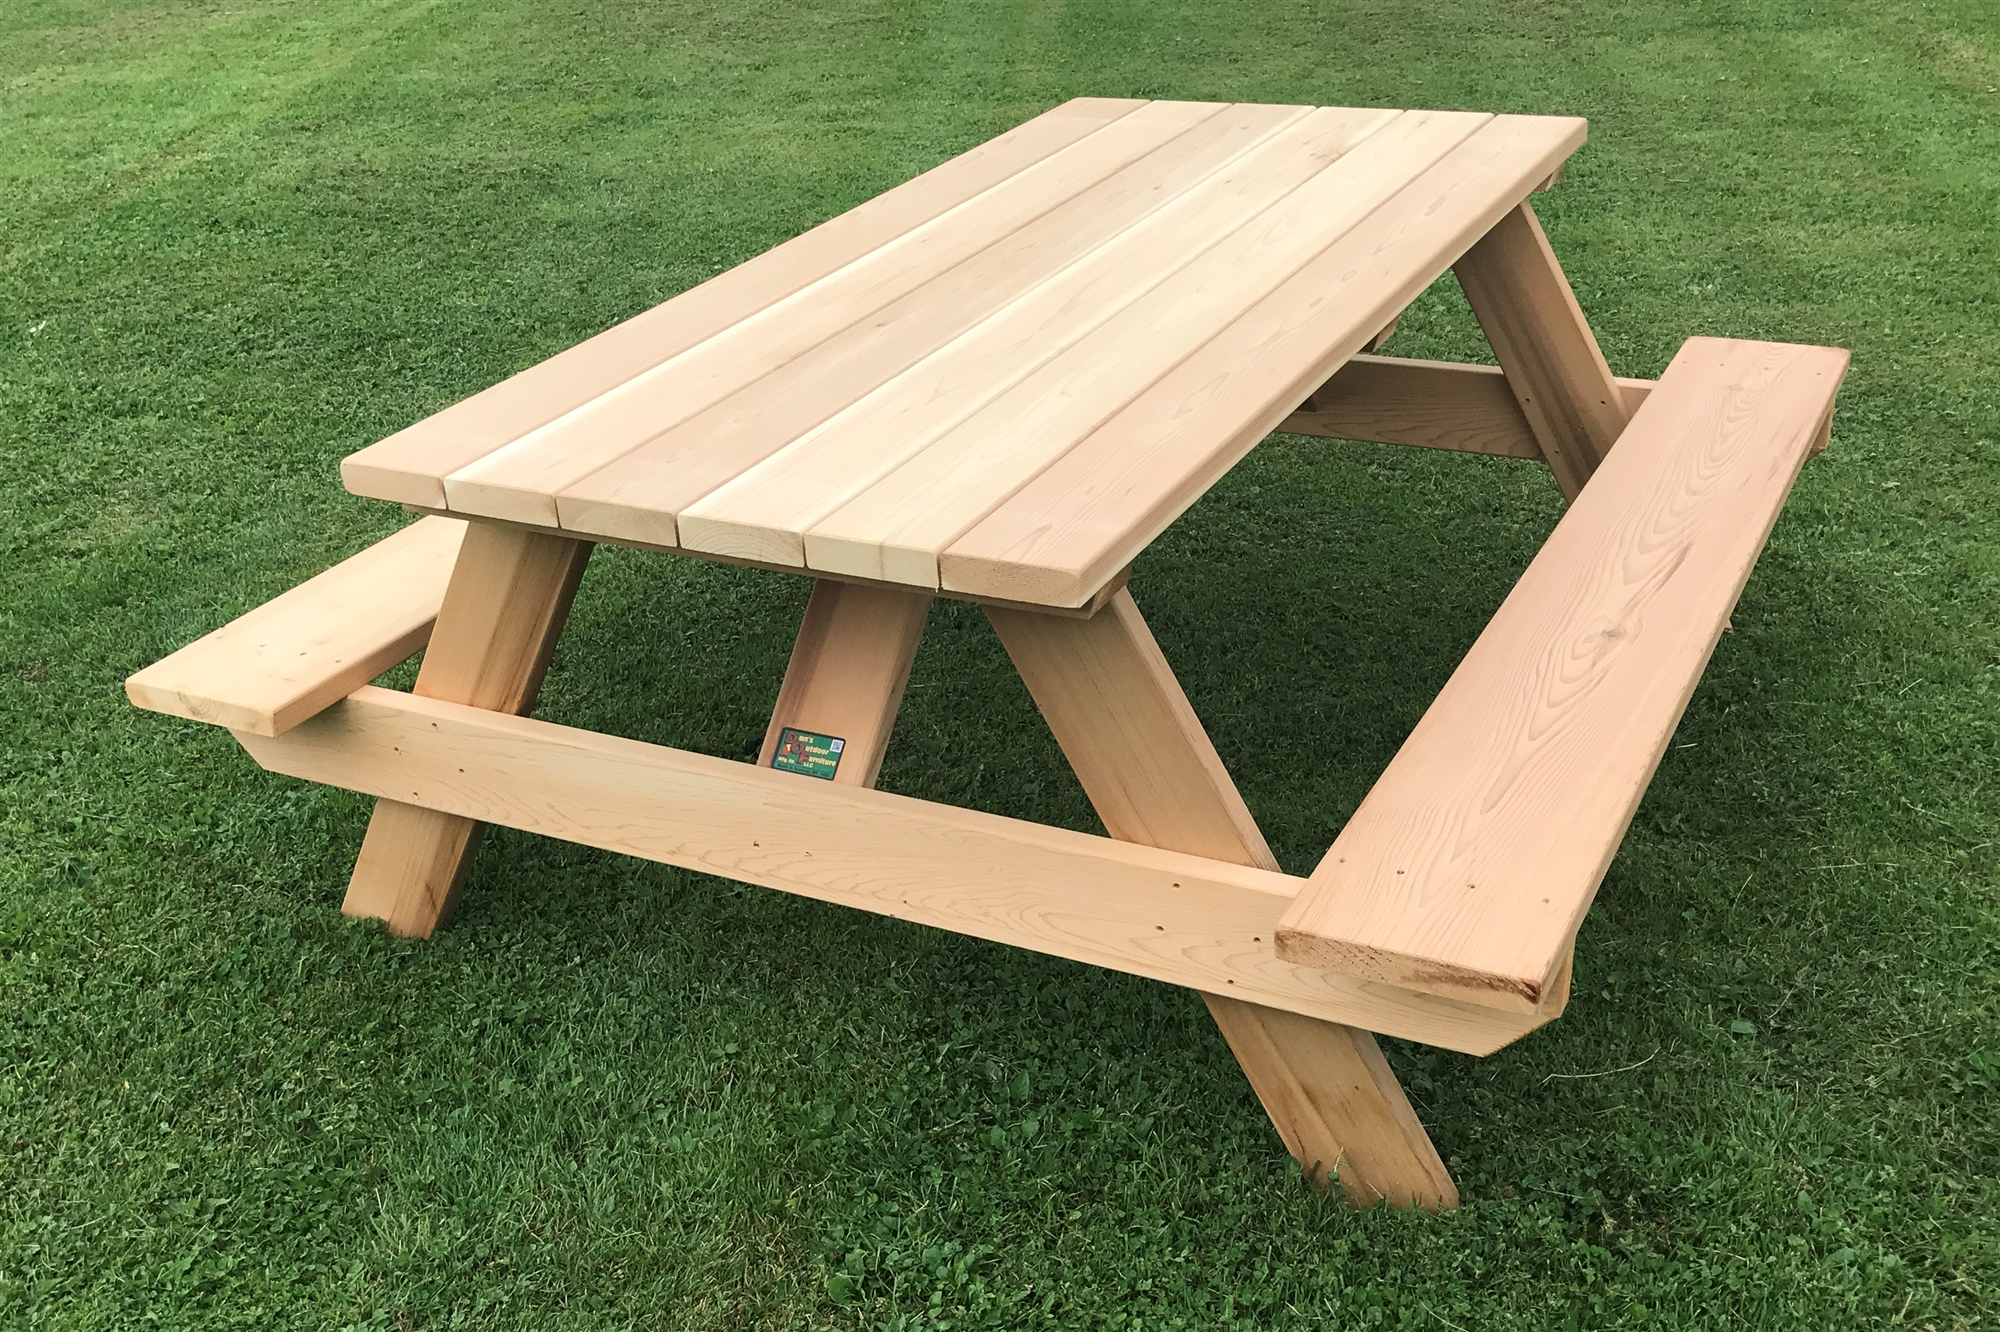 Classic 6 Heavy Duty Wooden Picnic Table For Home Or Business